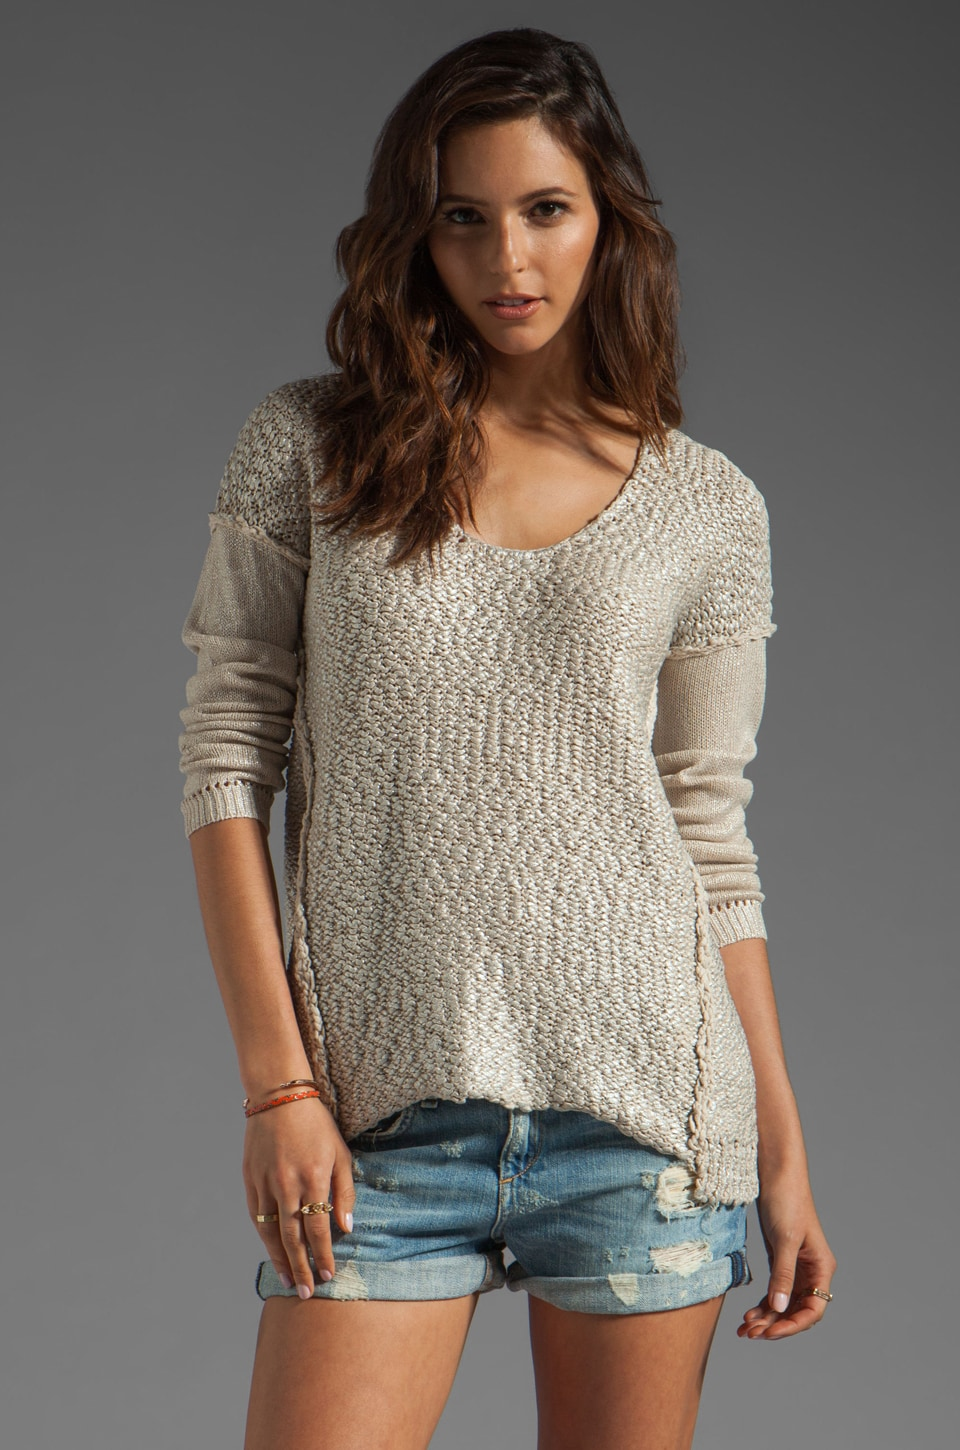 Rebecca Taylor Long Sleeve Pullover in Sand